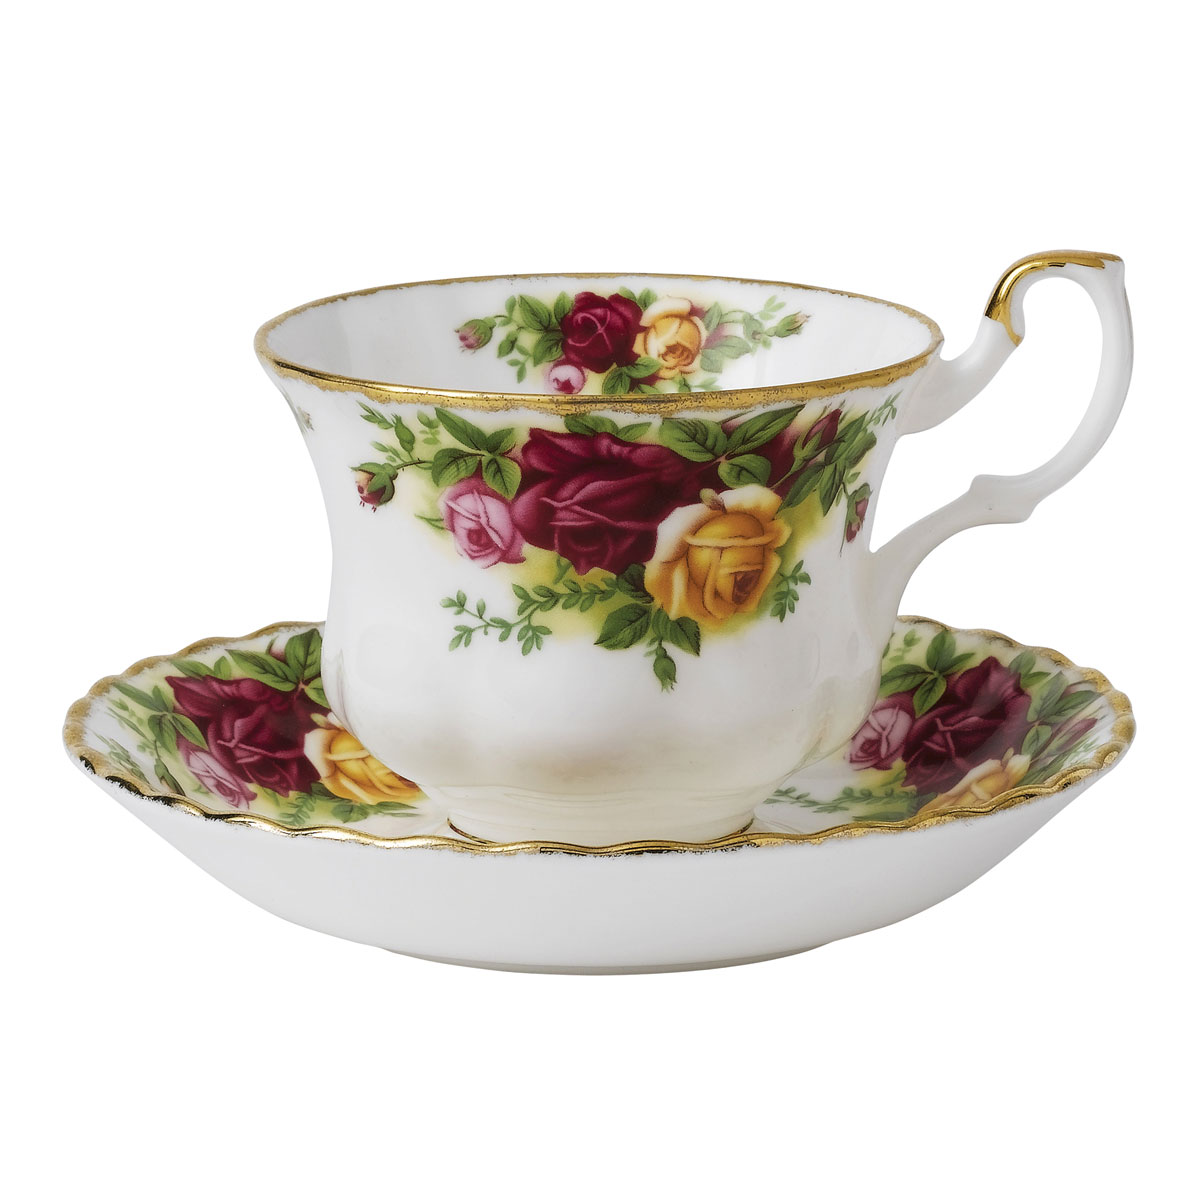 Royal Albert China Old Country Roses Teacup and Saucer Boxed Set